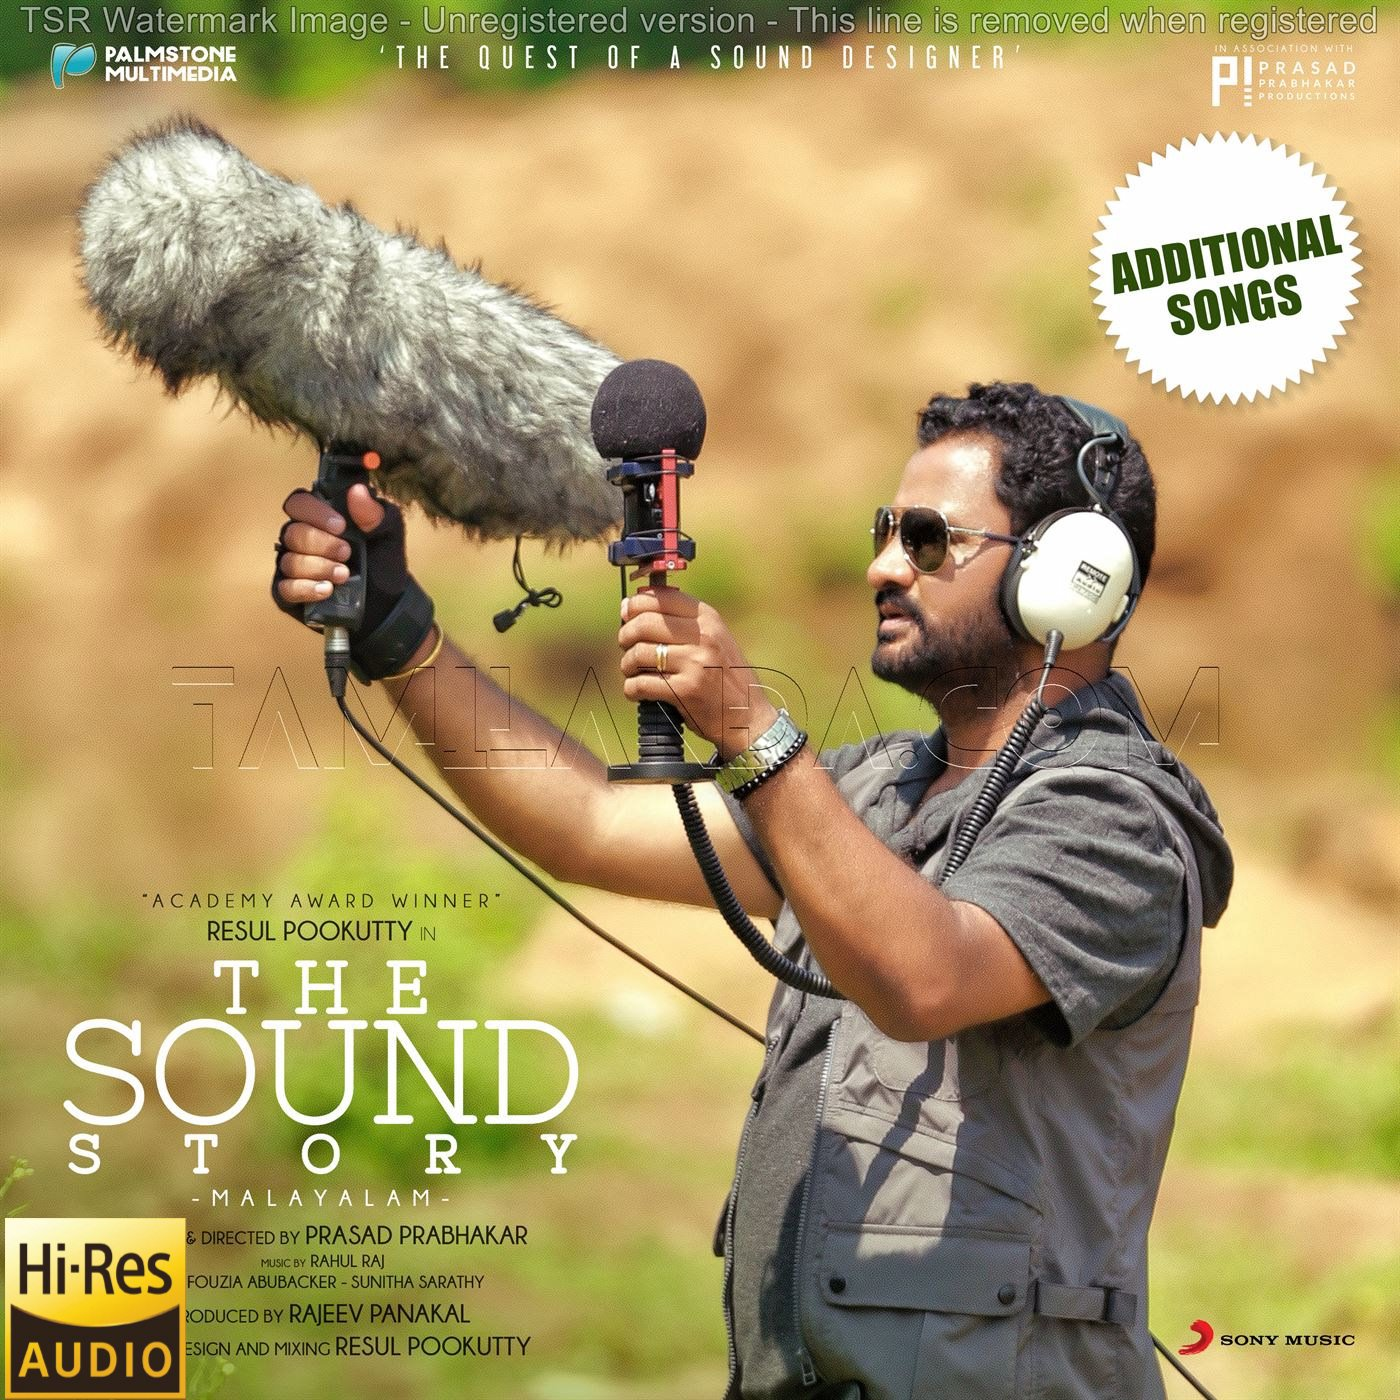 The Sound Story (Additional Songs) (24 BIT) FLAC Songs (2019)